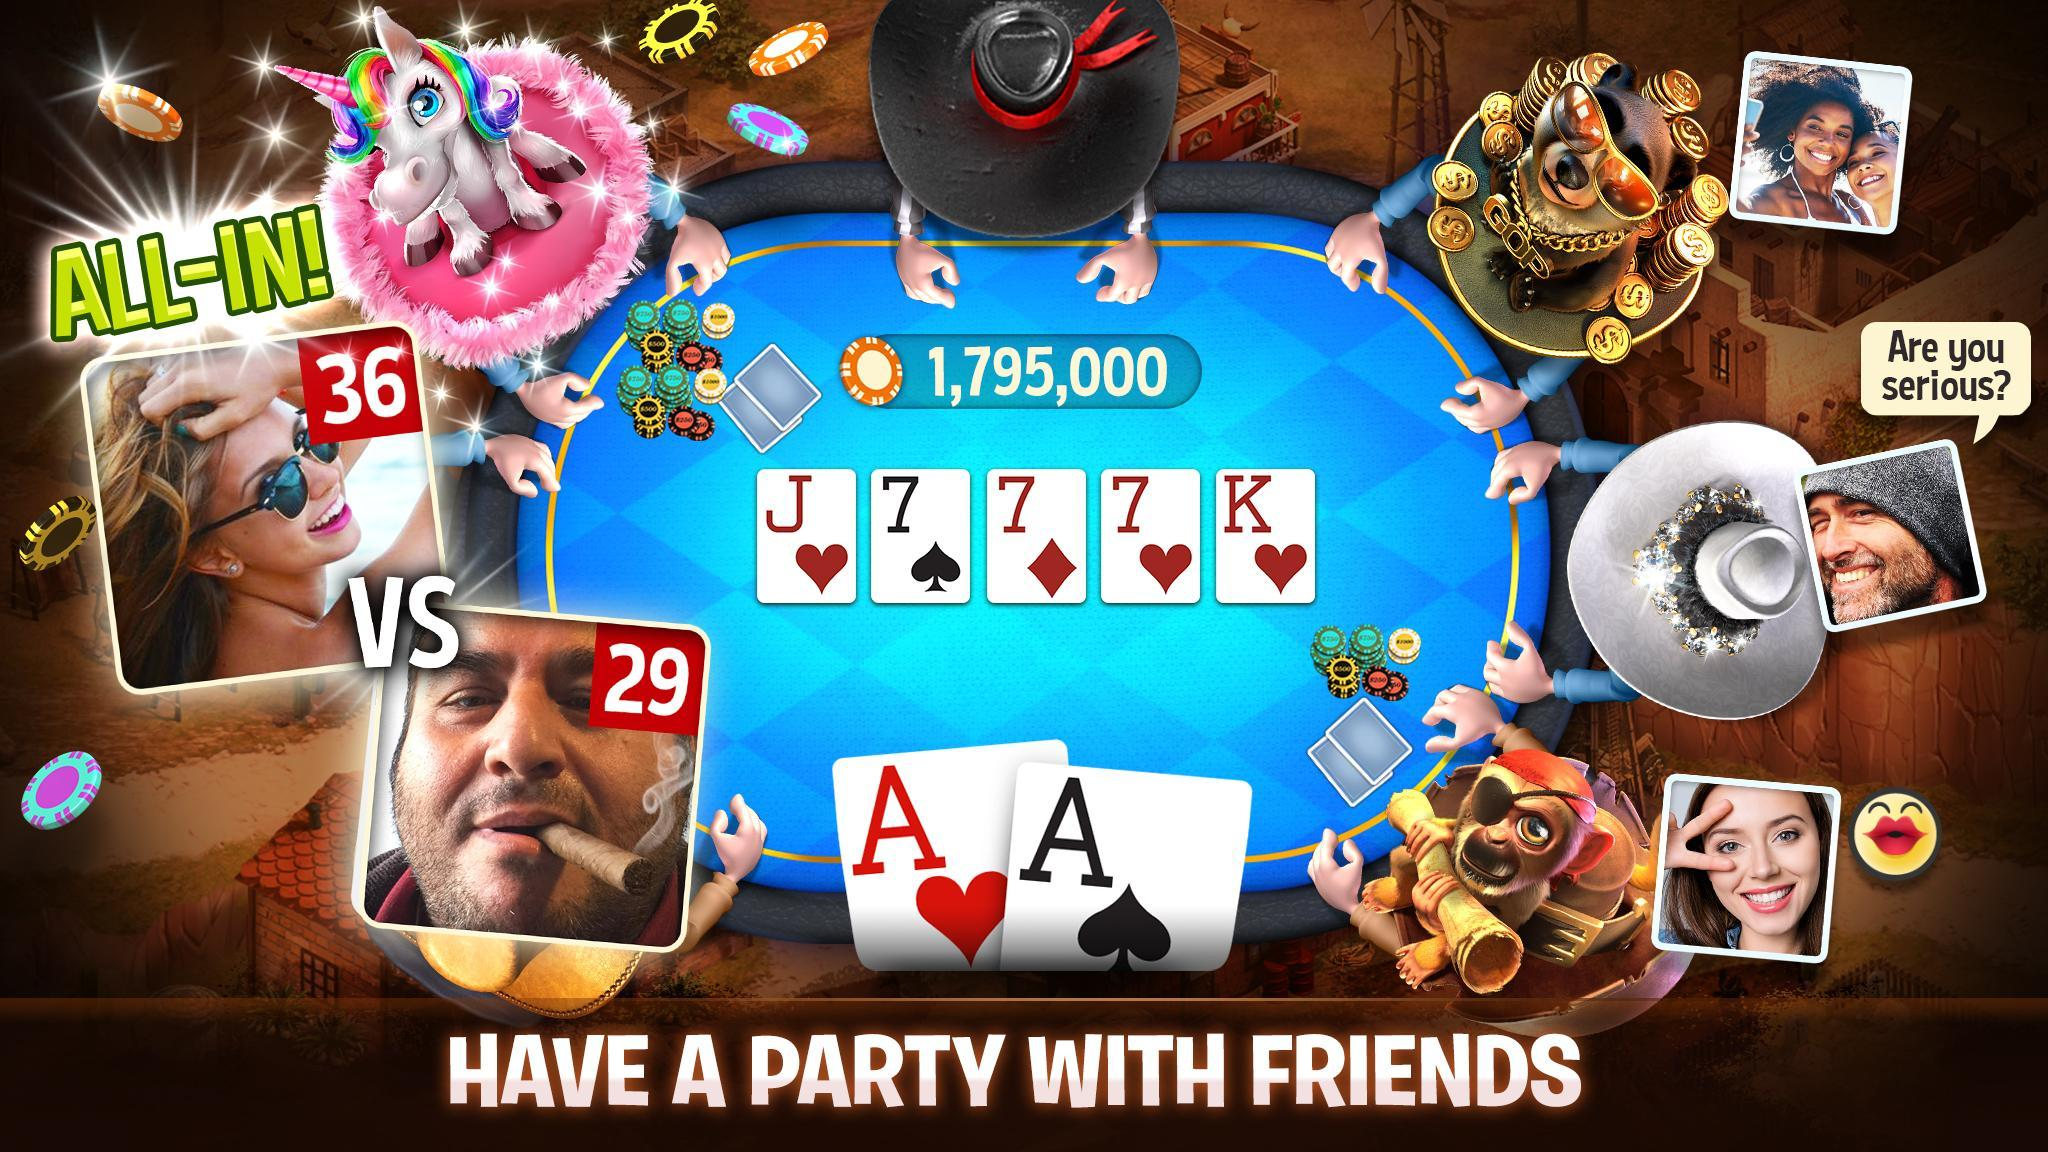 Governor of Poker 3 - Texas Holdem With Friends 6.9.1 Screenshot 13